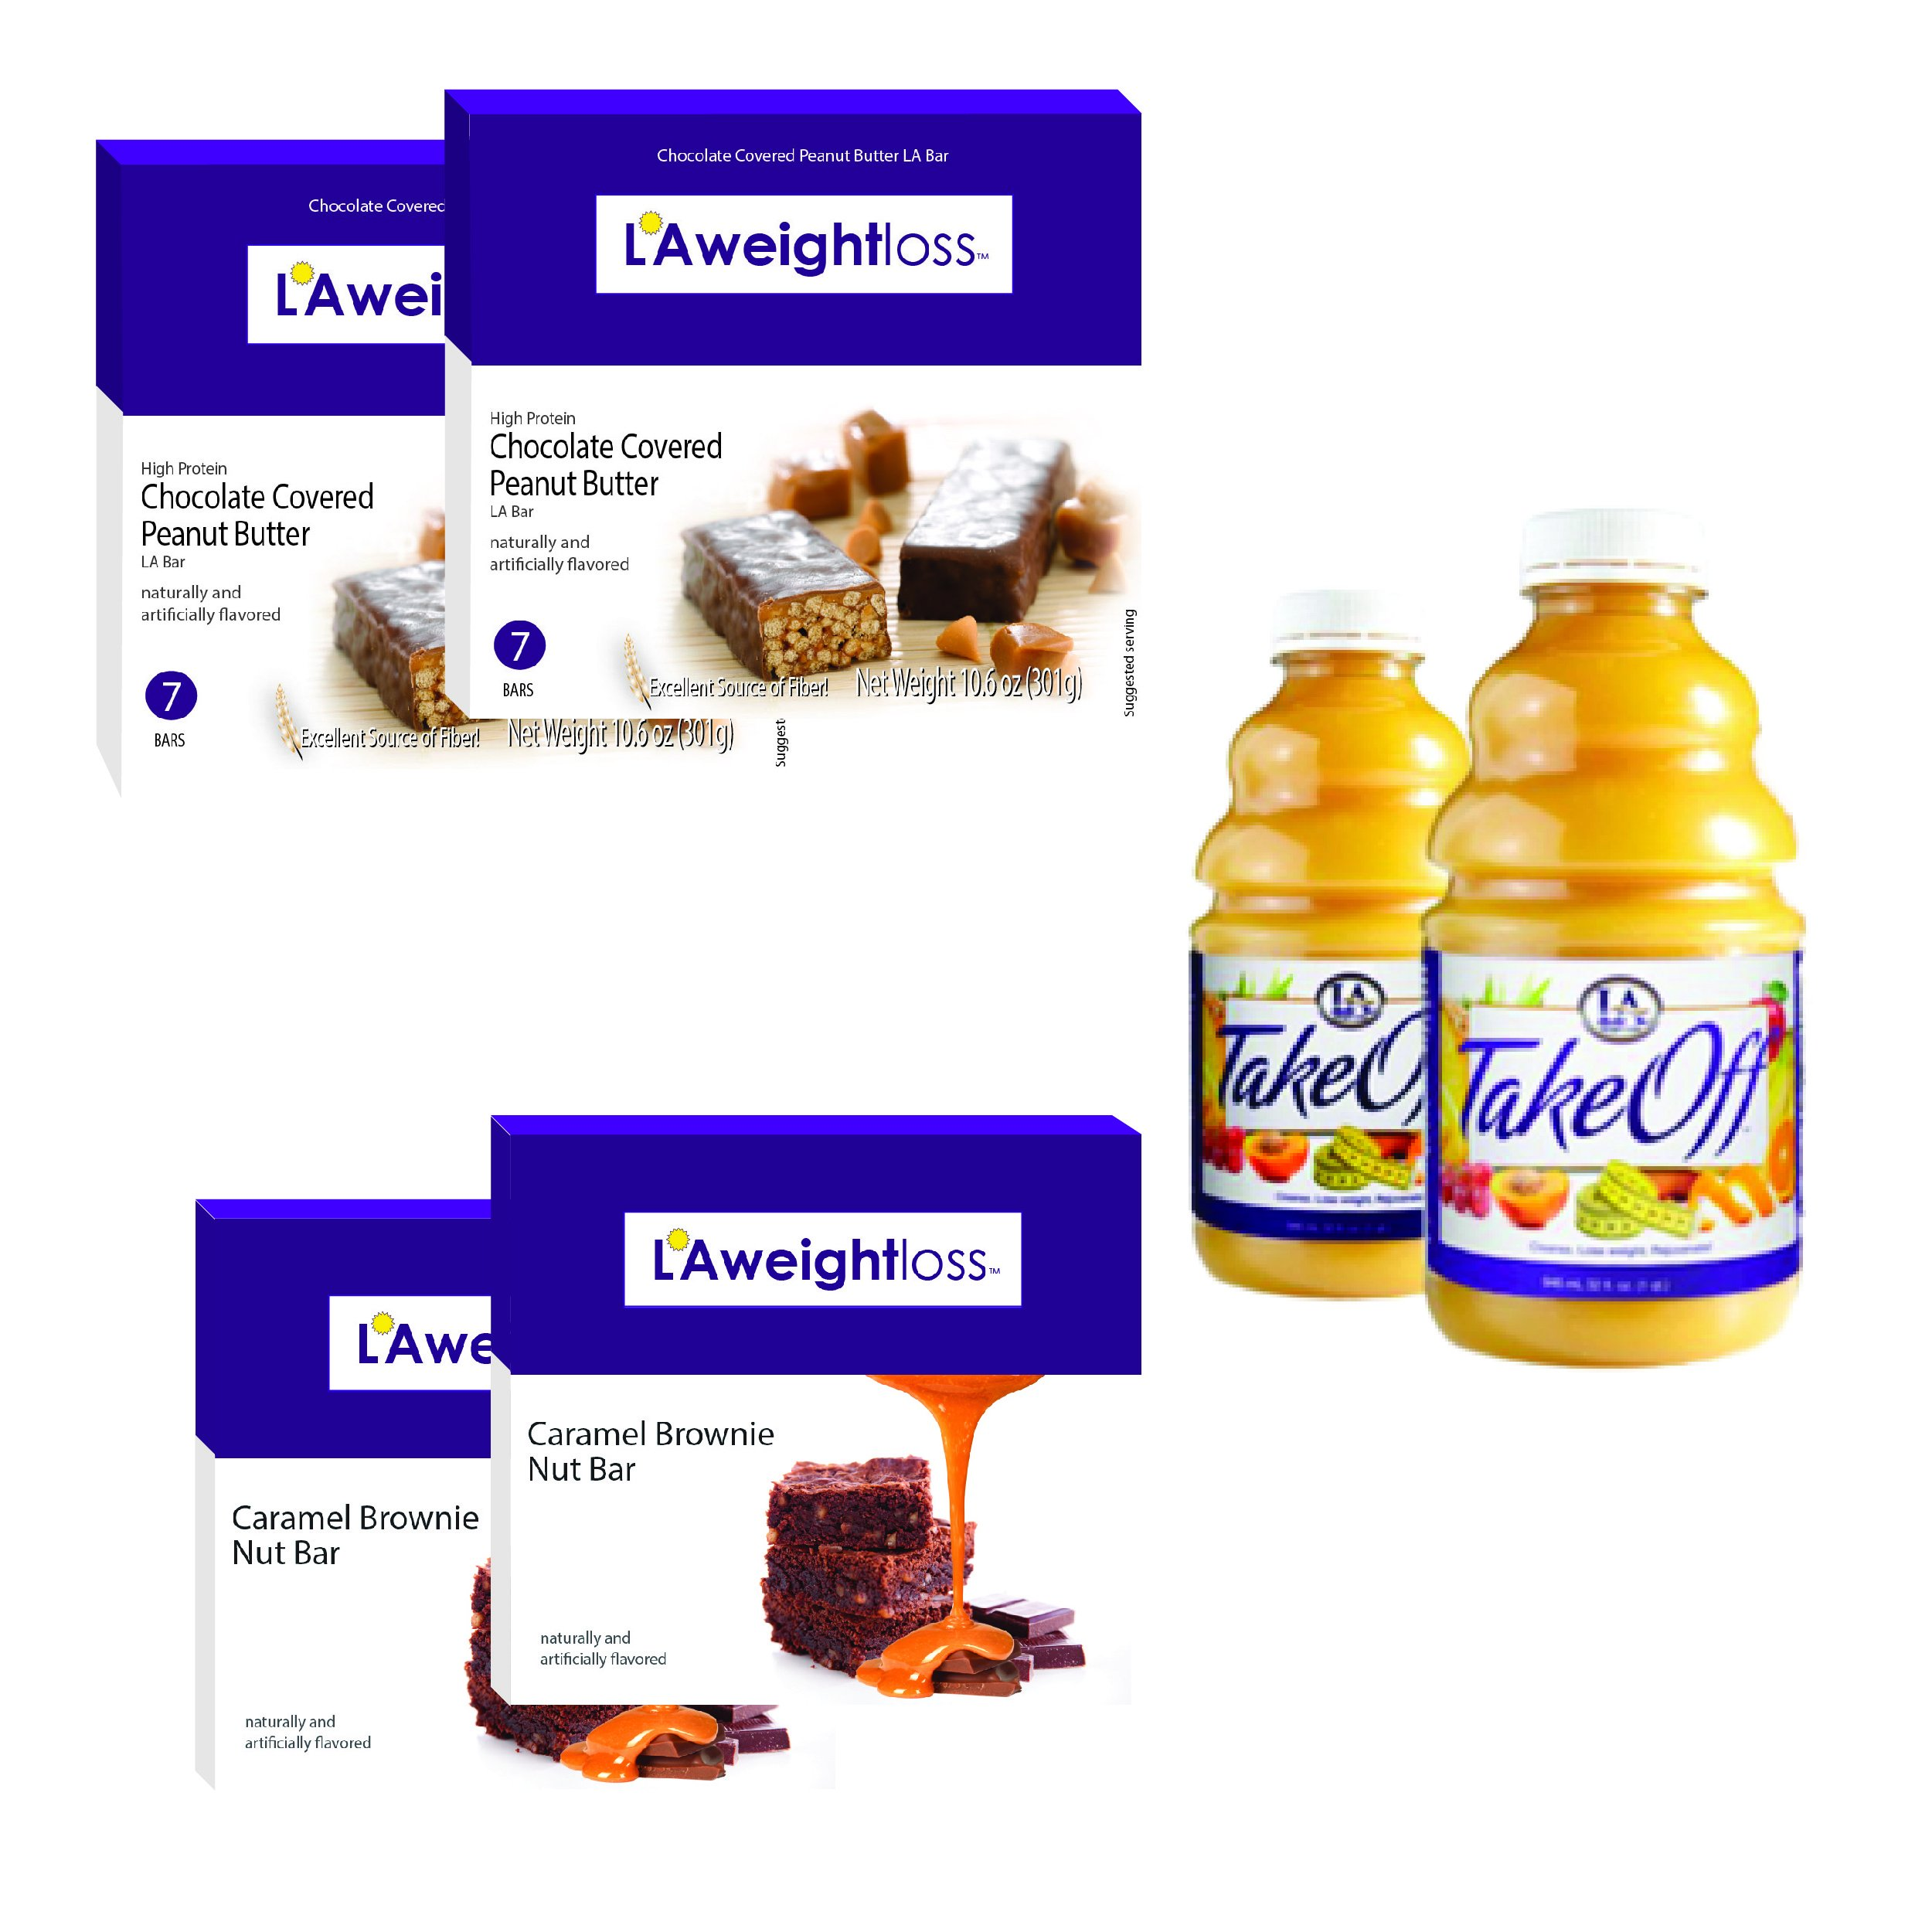 LA Weight Loss Combo - LA Bars & TakeOff Cleanse (PB & Caramel Brownie) by L A Weight Loss & Wellness (Image #1)